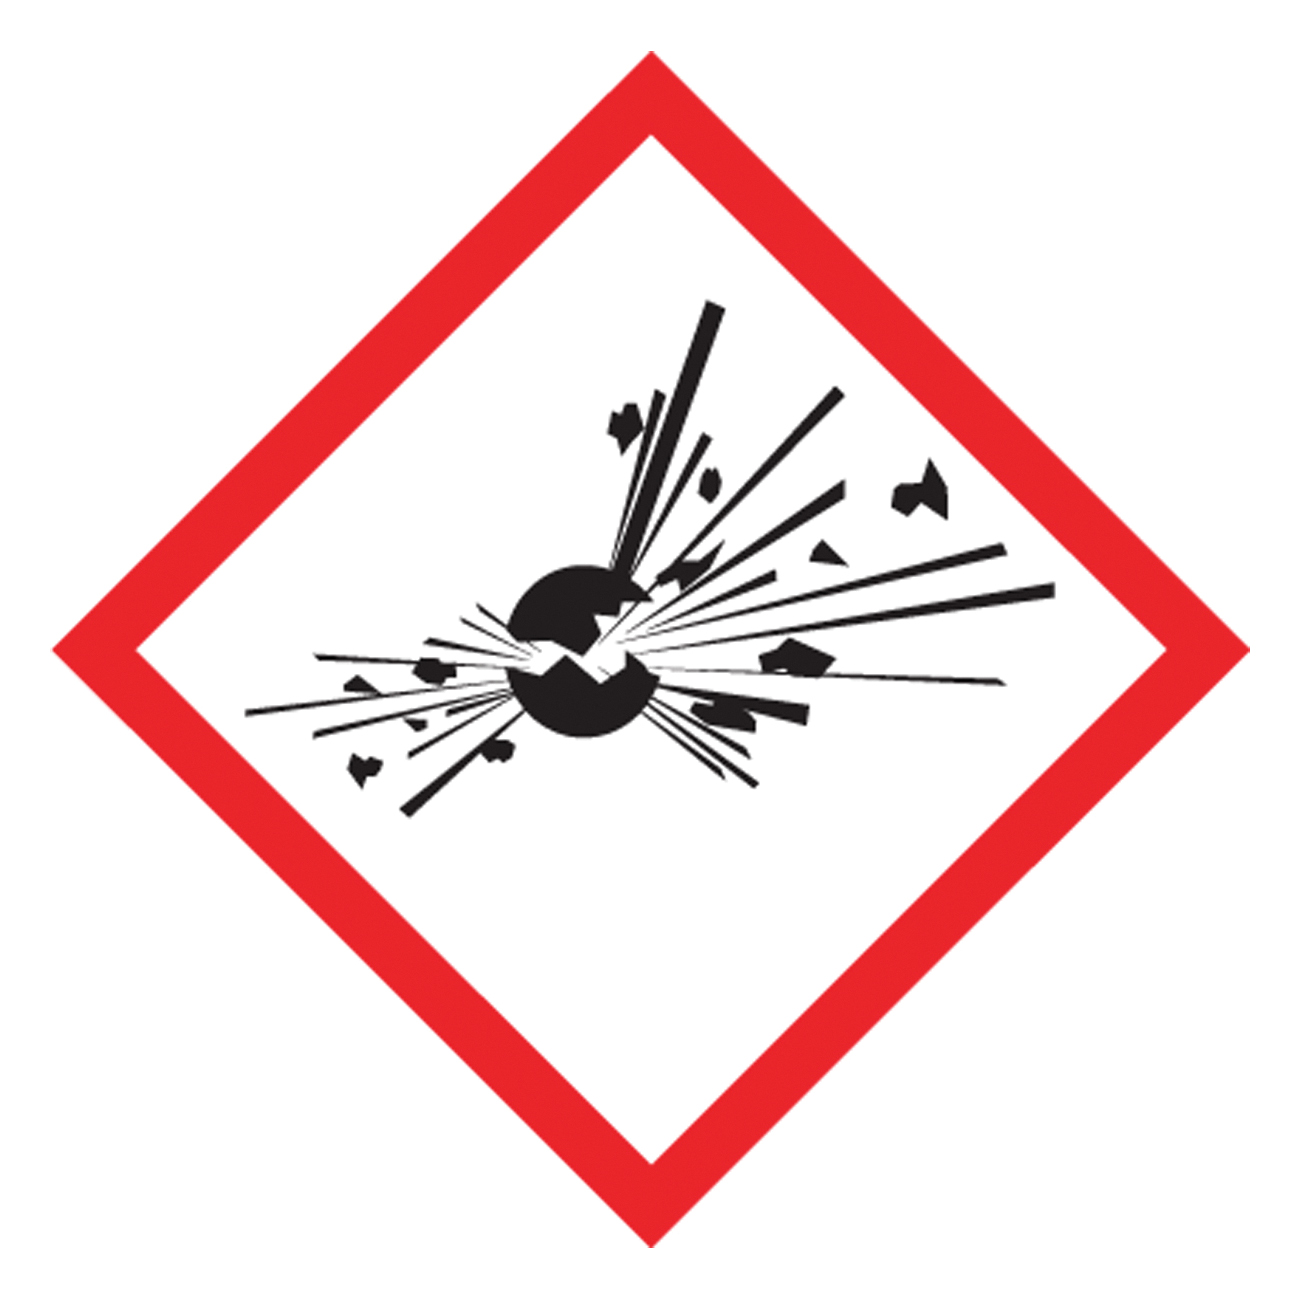 Accuform® LZH603EV5 Diamond Self-Adhesive GHS Pictogram Label, 1 in L x 1 in W, (Exploding Bomb) Legend, Black/Red/White, Adhesive Polyester, 500 per Roll Labels